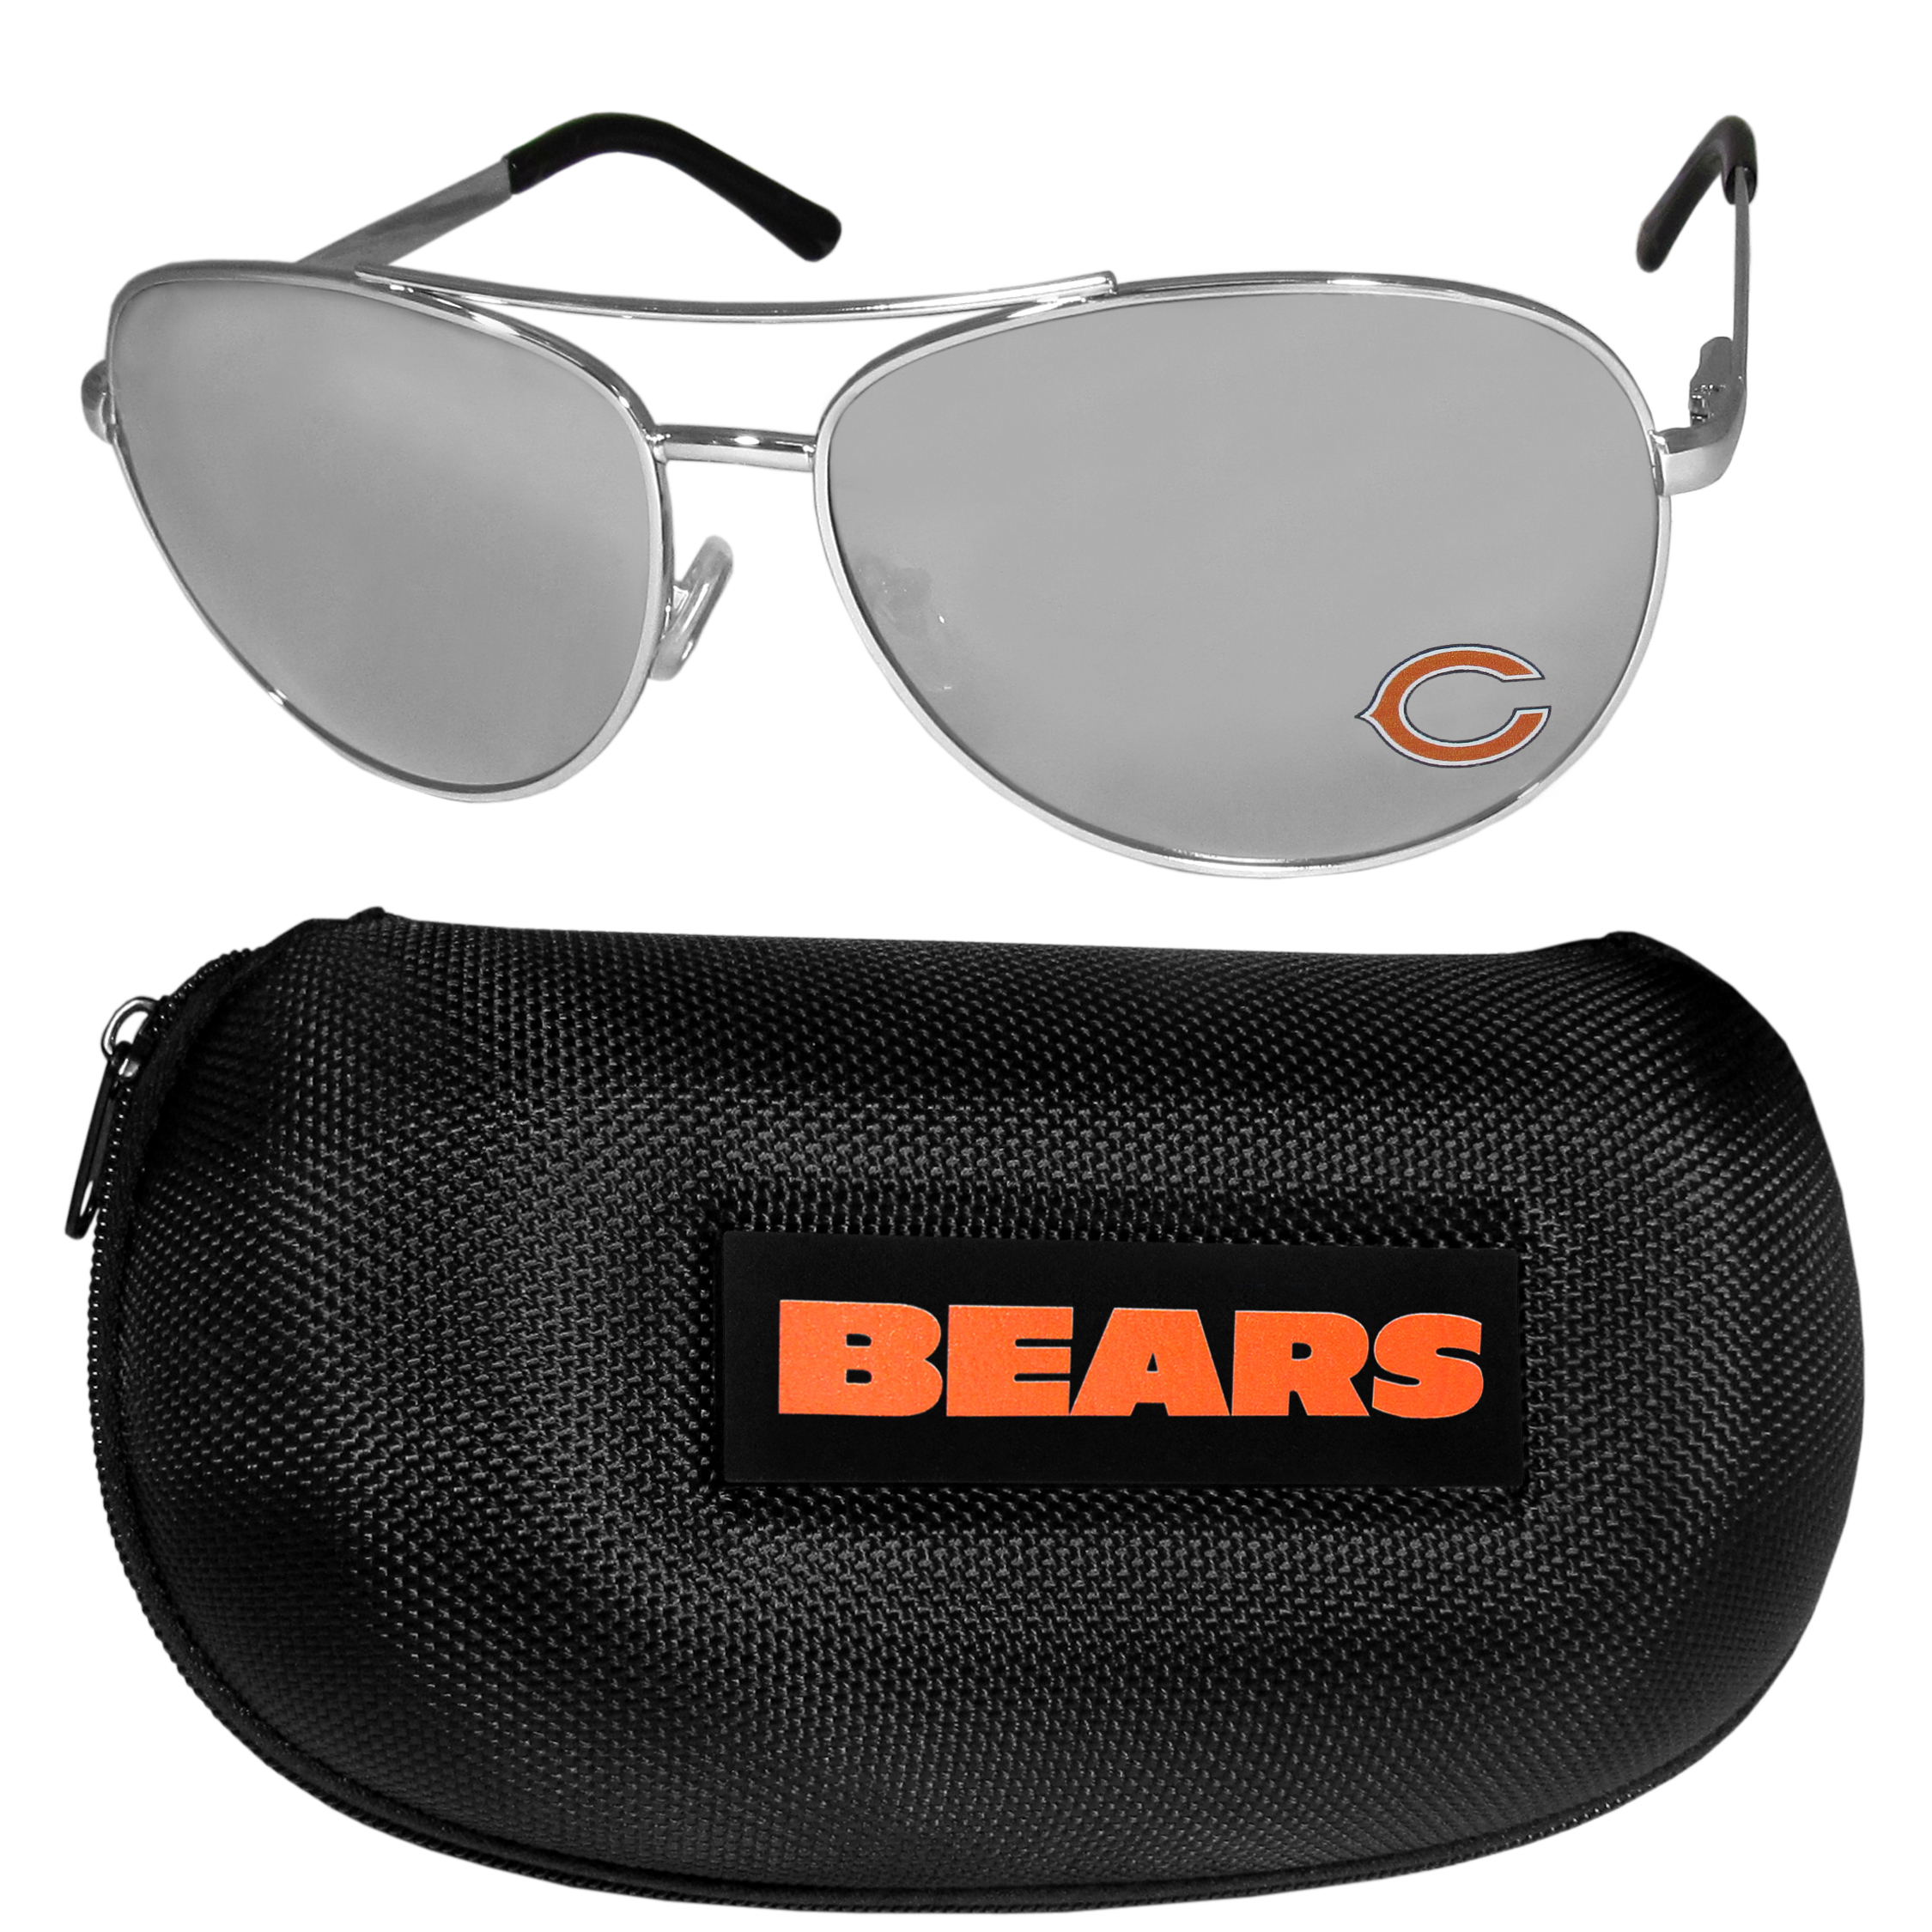 Chicago Bears Aviator Sunglasses and Zippered Carrying Case - Aviator sunglasses are truly an iconic retro fashion statement that never goes out-of-style. Our Chicago Bears  aviator sunglasses pair this classic look with your love of the game. The iridium coated lenses reduce glare while driving, boating, golfing and their 100% UVA/UVB rating provides you with the maximum UV protection for all your outdoor activities. A millennial favorite, these affordable designer frames are the perfect eyewear accessory for a sports fan that is looking for high-quality at an affordable price. The durable, flex hinged frames are tough enough for hiking and camping or if you prefer sun bathing by the pool or on the beach these shades will really stand the test of time. The sunglasses come with a hard shell zippered case which has a large team logo on the lid that will make even the most die-hard fan proud!